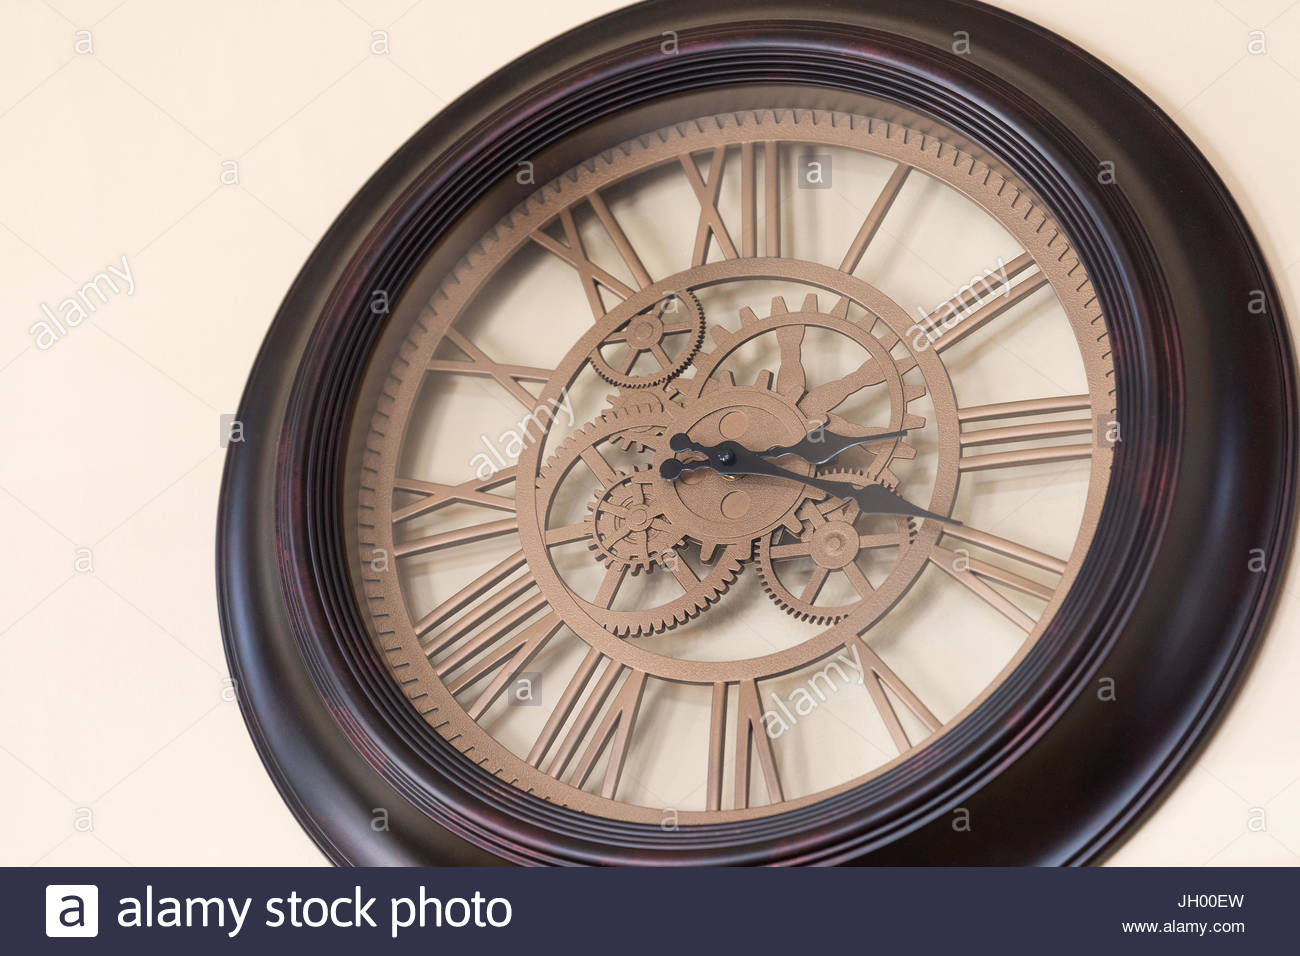 A Dark Wooden Clock Face With Exposed Gears And Roman Numerals - 3-roman-numerals-clocks